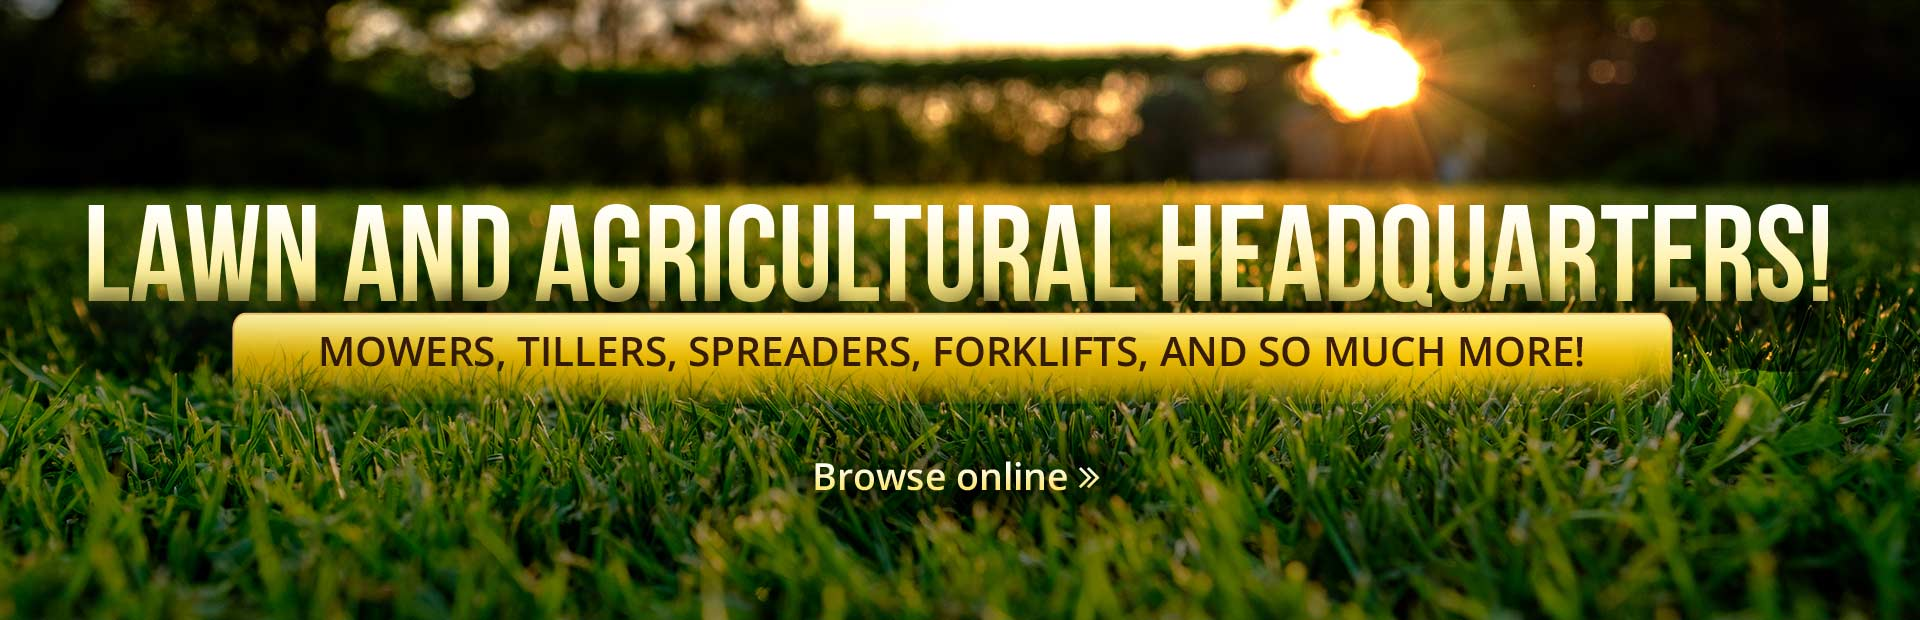 We are your lawn and agricultural headquarters! Click here to browse mowers, tillers, spreaders, forklifts, and more.